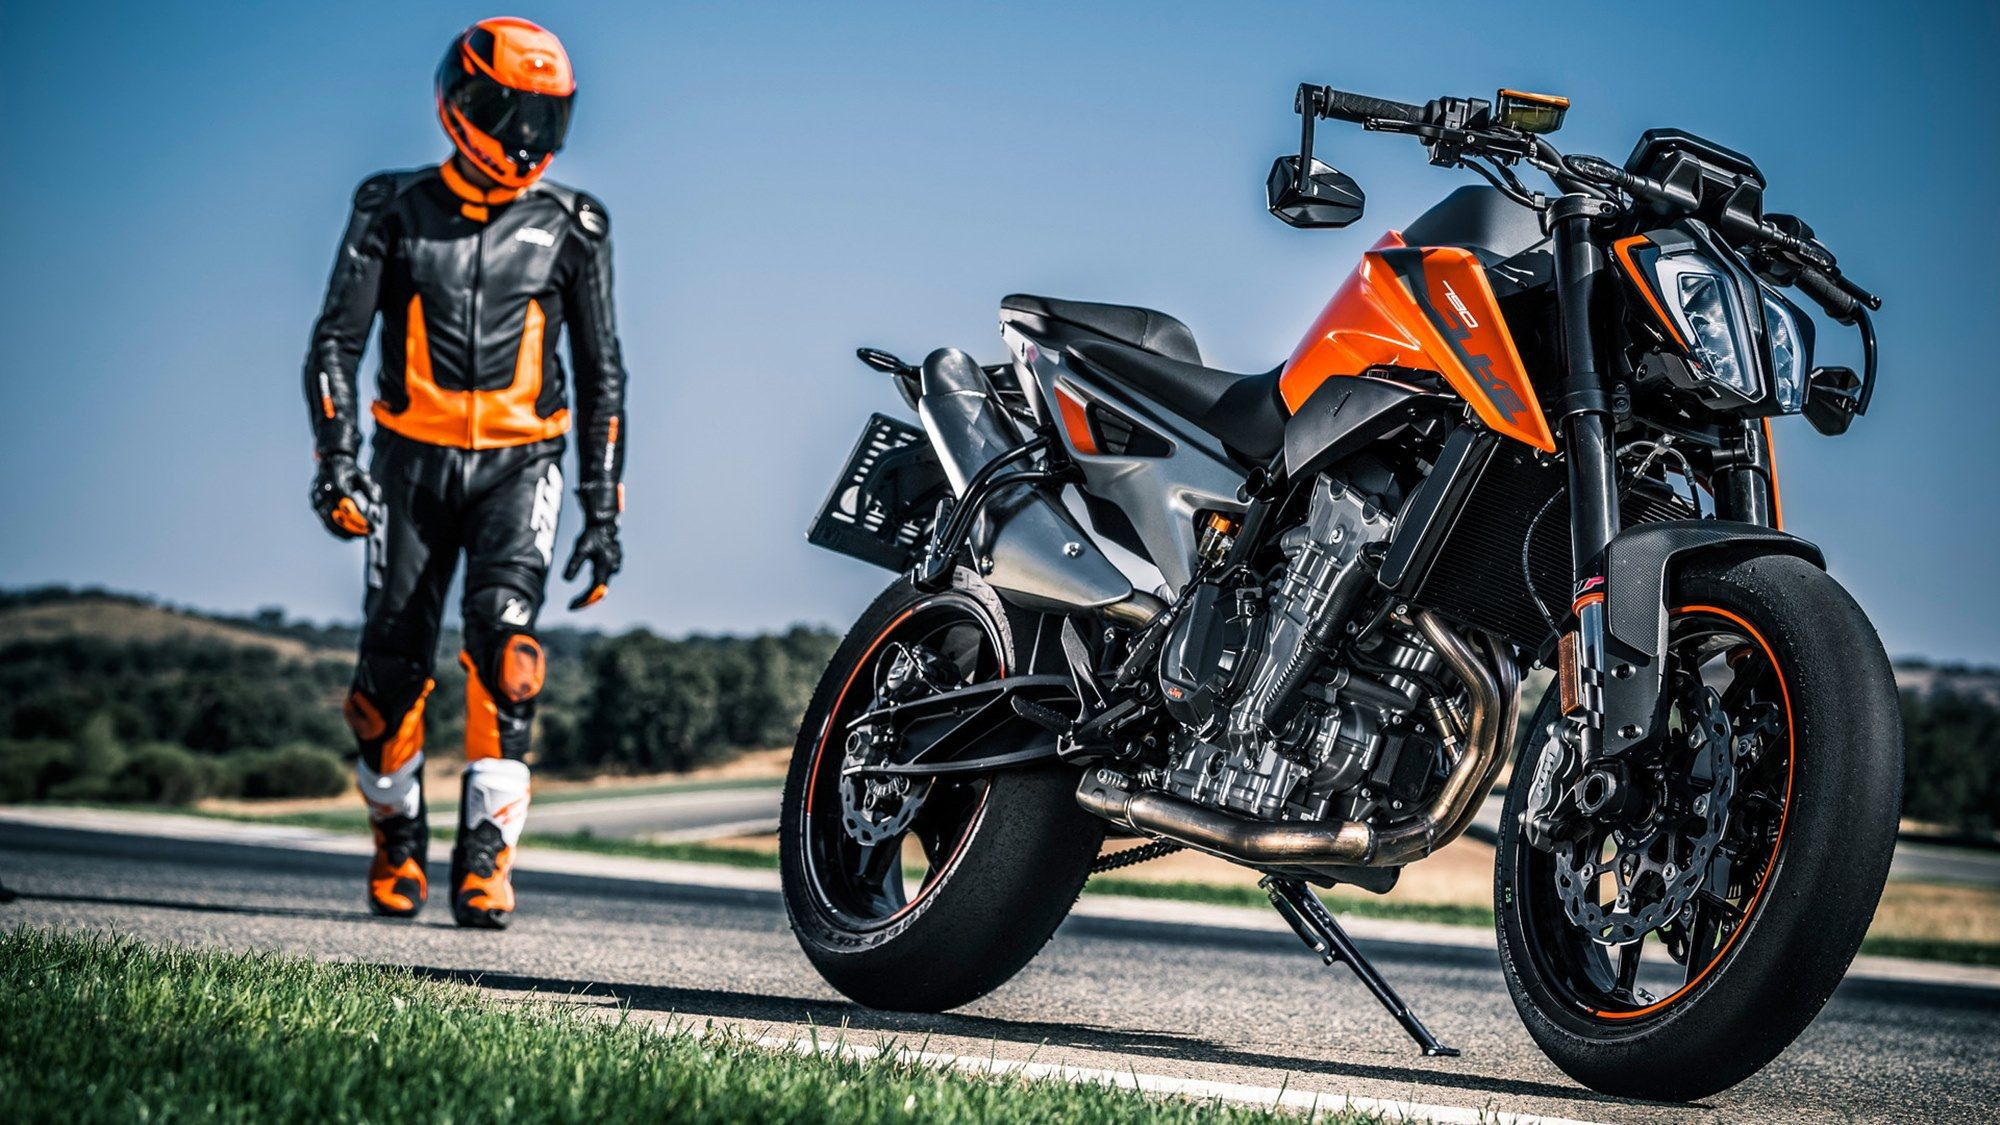 2018 Ktm 790 Duke Is Here And Is Just Wow Ktm Motorcycles